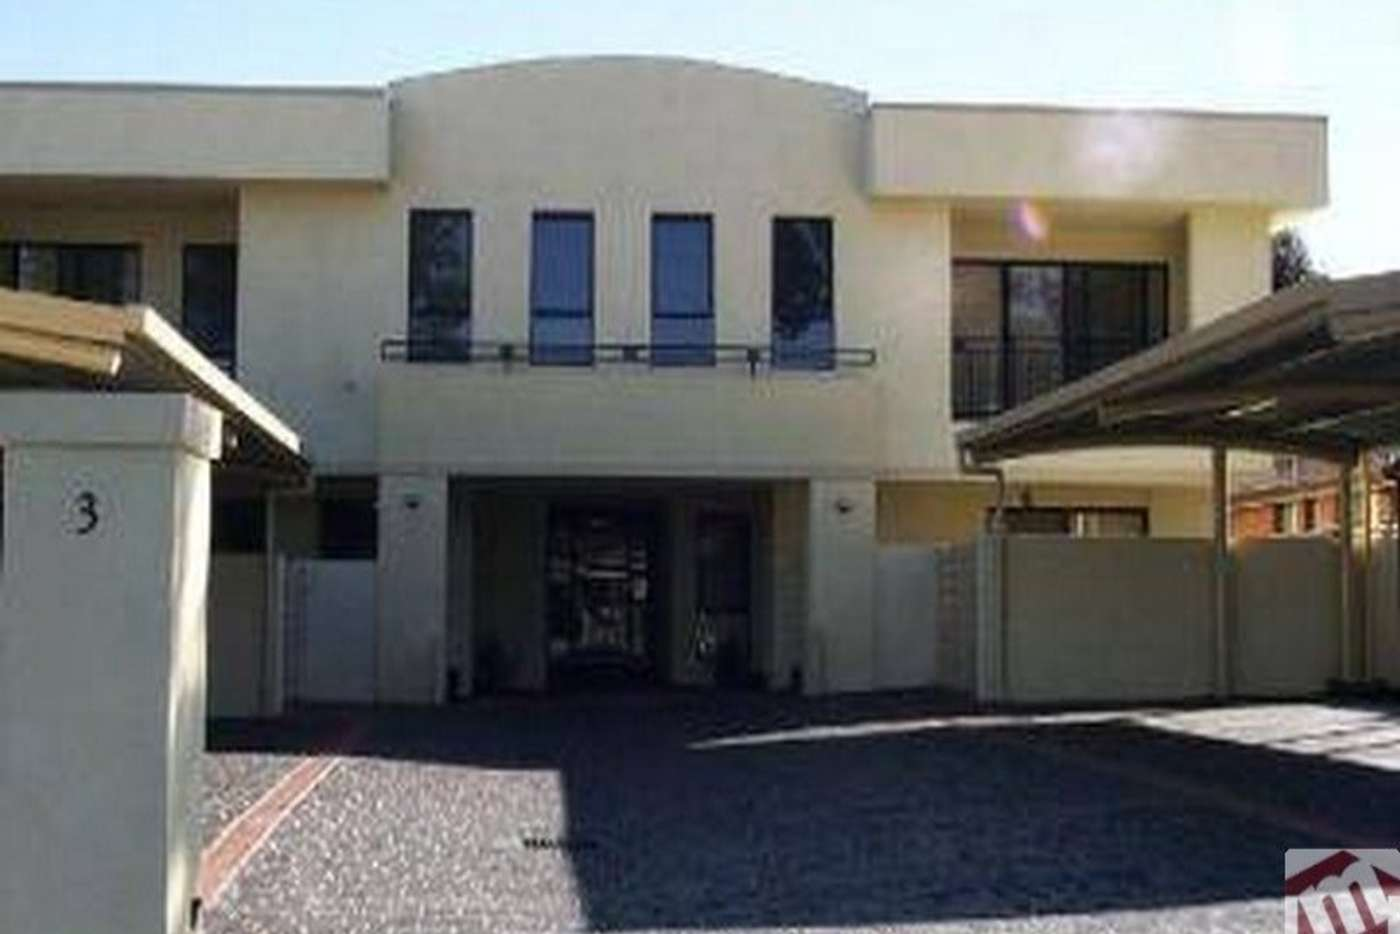 Main view of Homely apartment listing, 2/3 Mill Park Drive, Mill Park VIC 3082